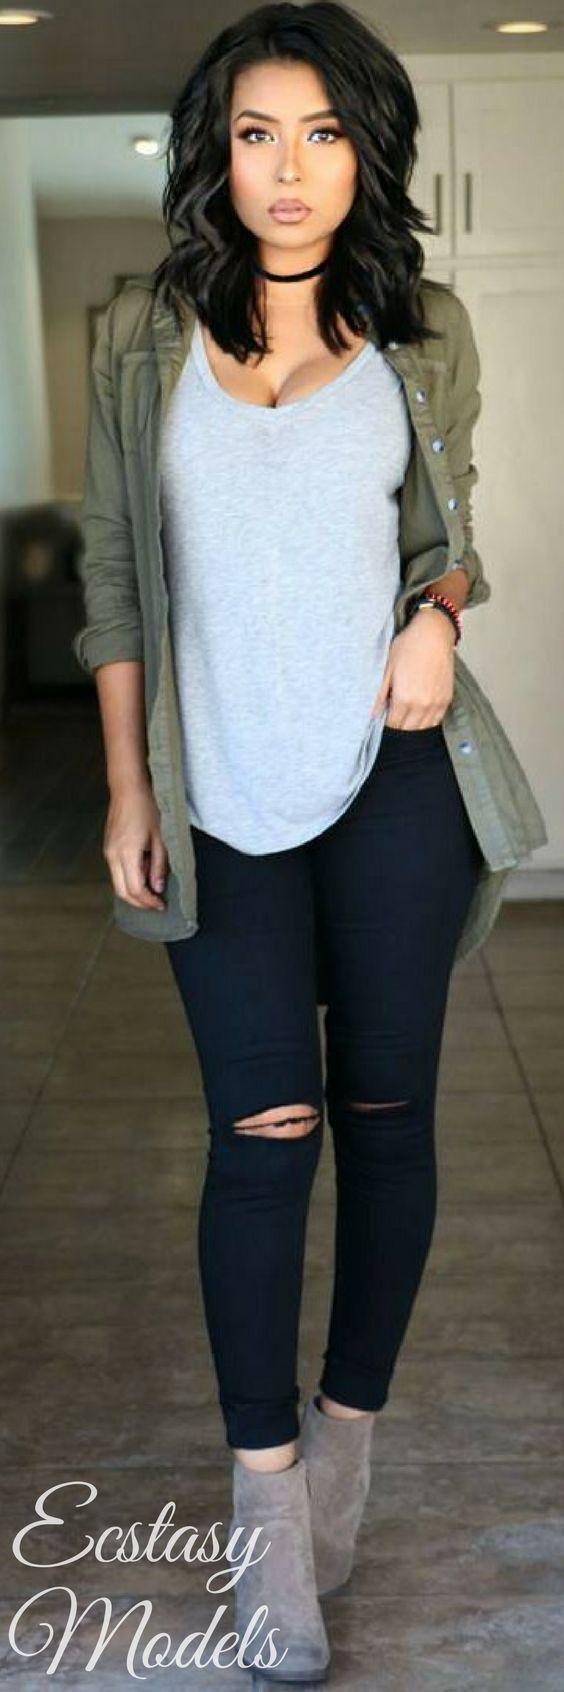 24 Trendy Outfits For Women To Look Stylish